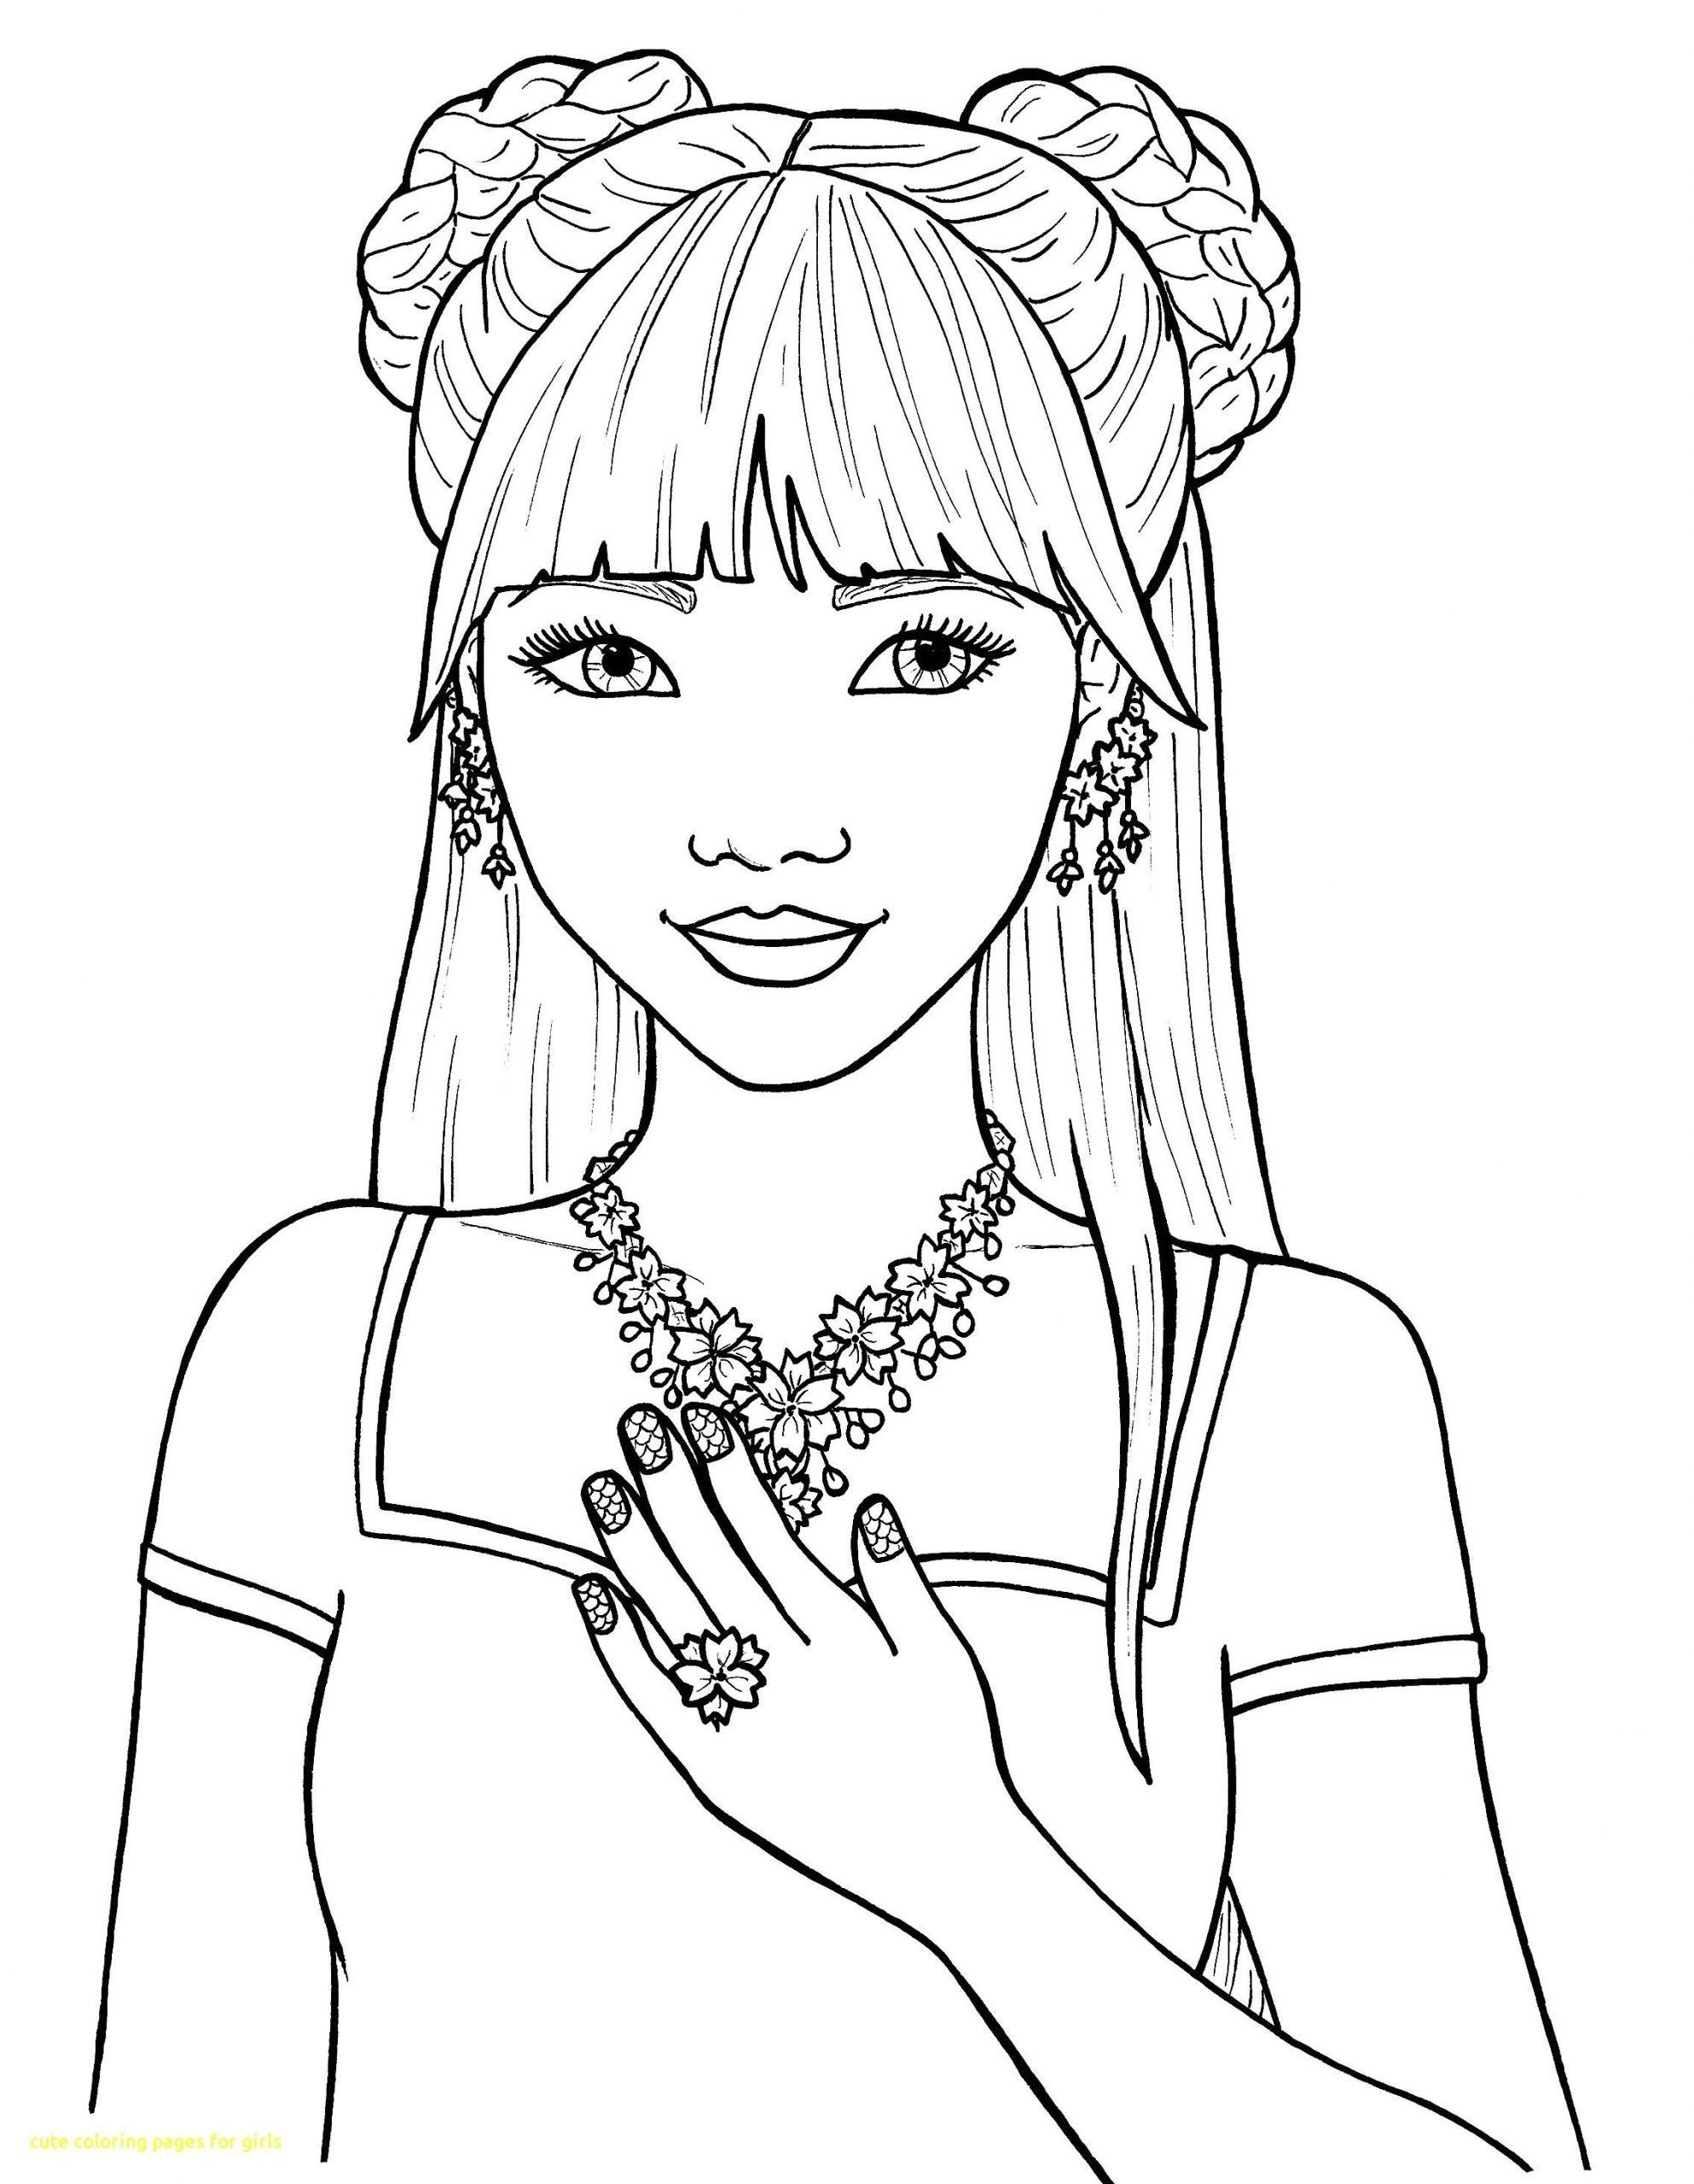 Coloring Pages For Teens Cute Coloring Pages For Girls With Inside Teens Teenage In 2020 People Coloring Pages Cute Coloring Pages Coloring Pages For Girls